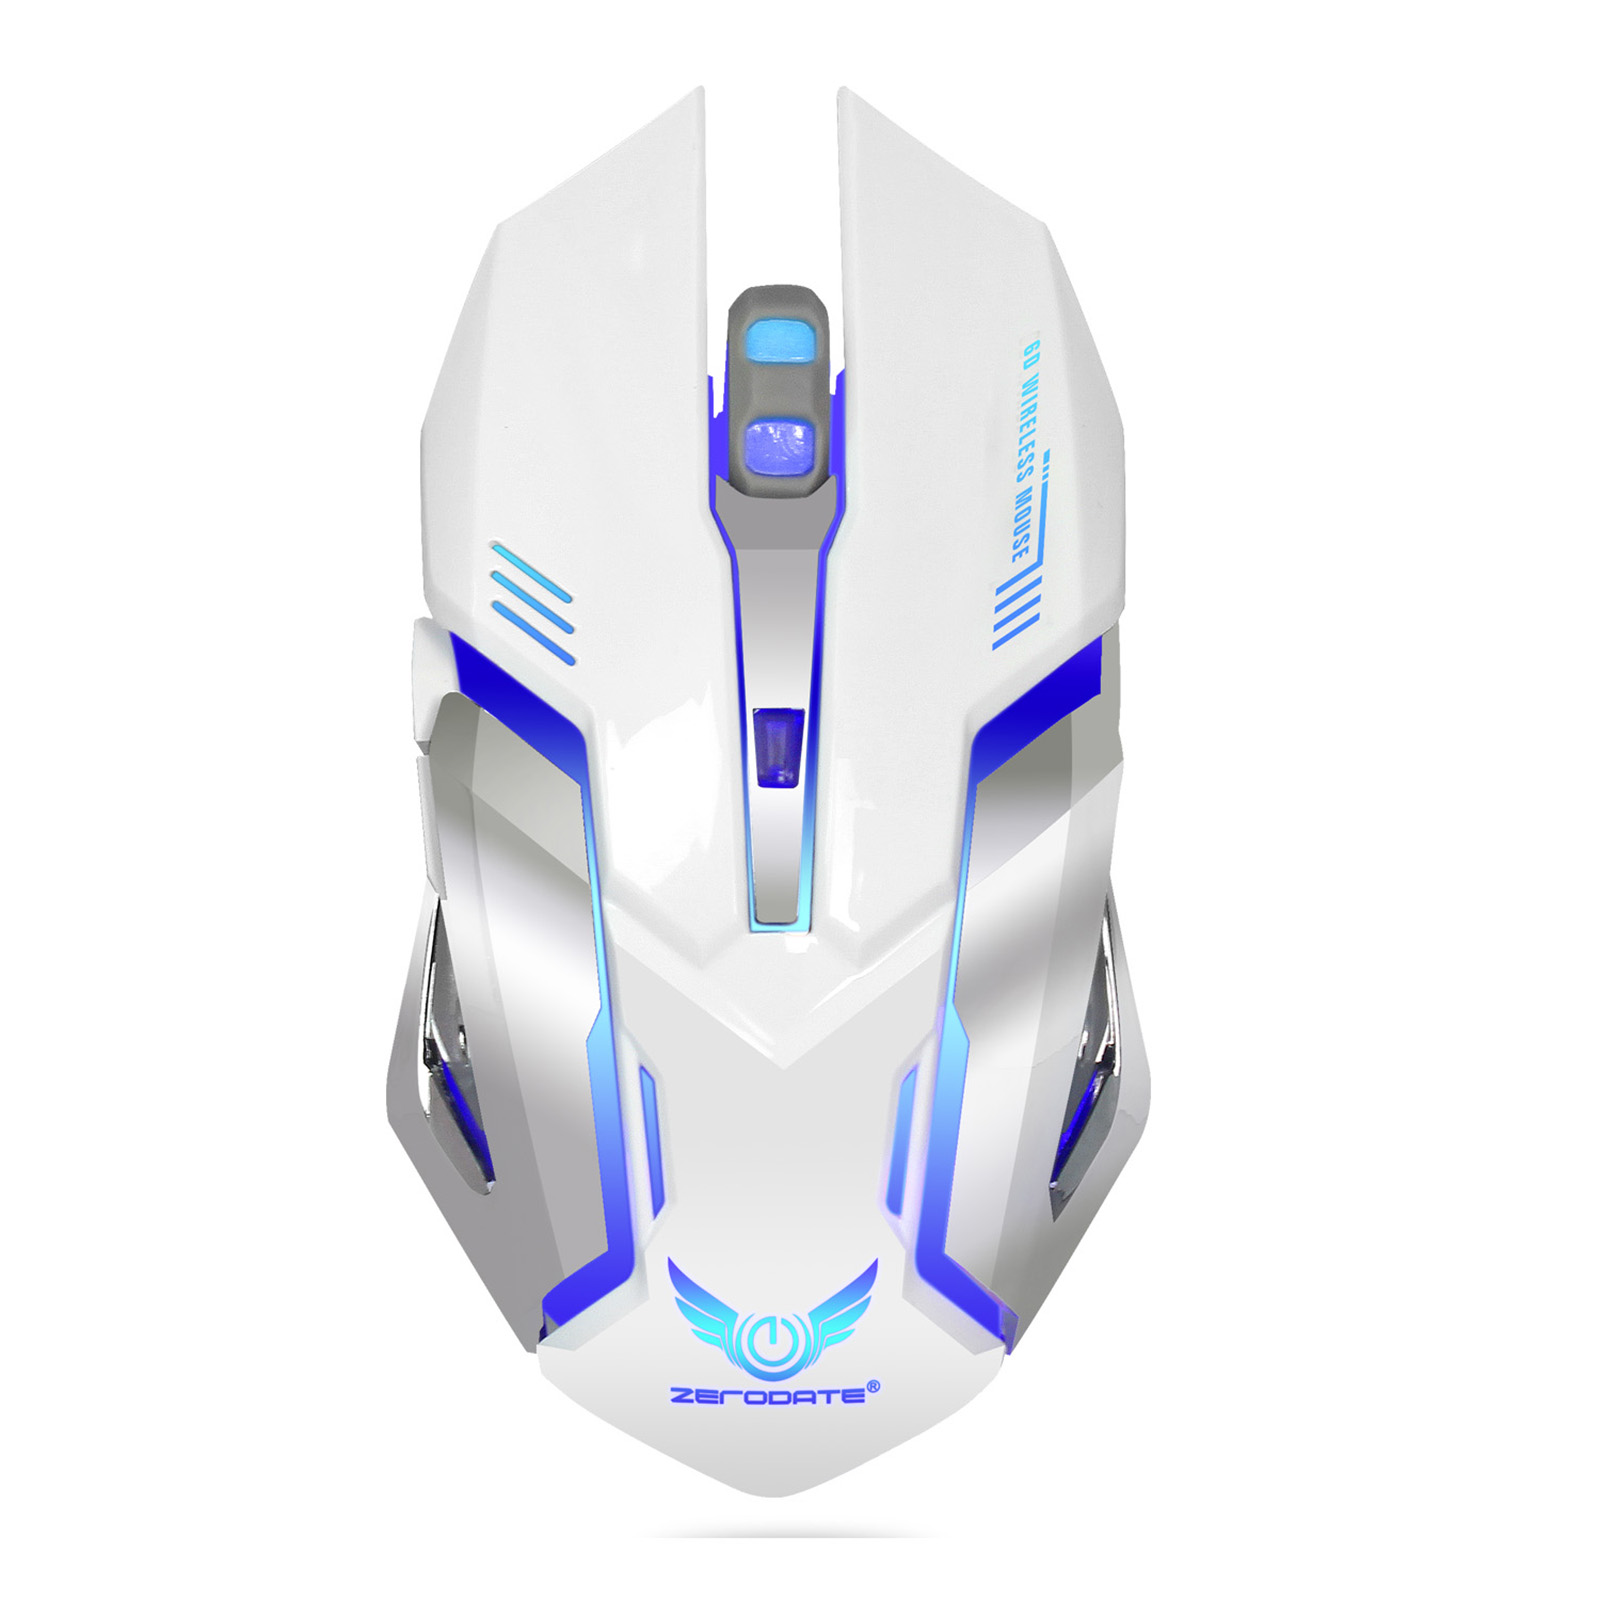 MeterMall Electronics Rechargeable Wireless Mouse Mute Gaming Smooth Office Mouse